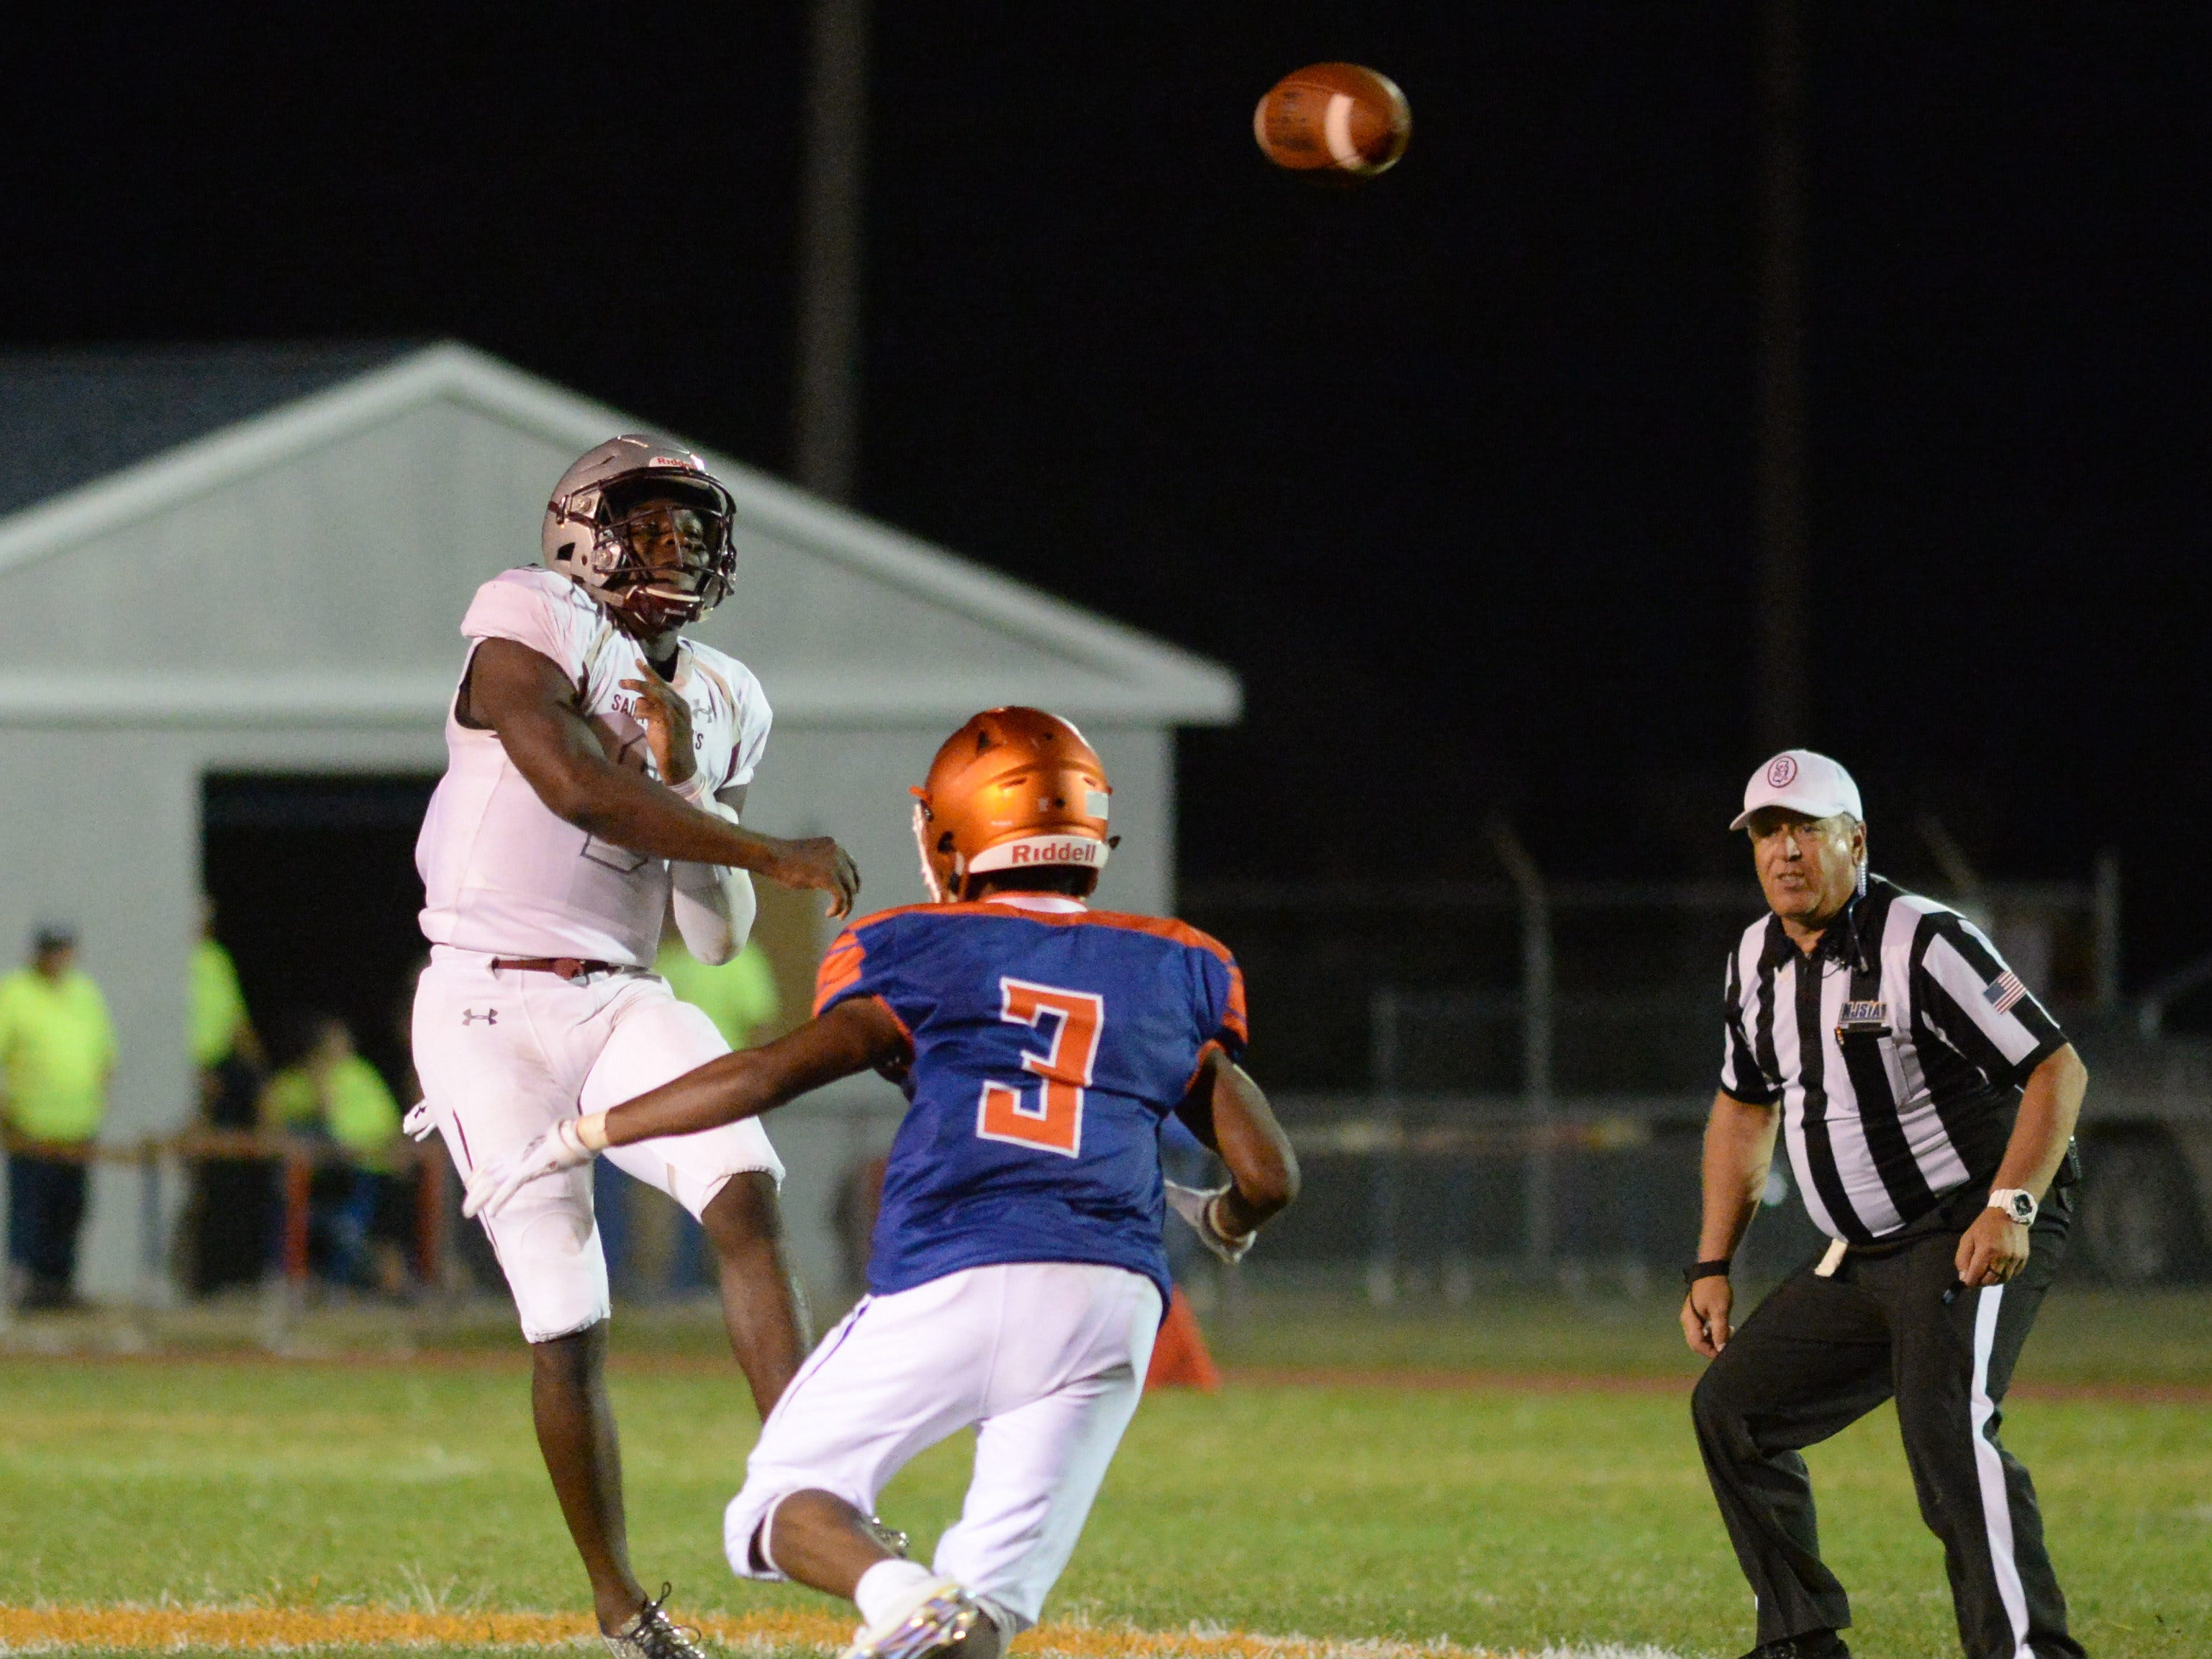 St. Peter's Prep's Maasai Maynor throws the ball during the season opening football game against Millville at Millville Memorial High School, Friday, Aug. 31, 2018.